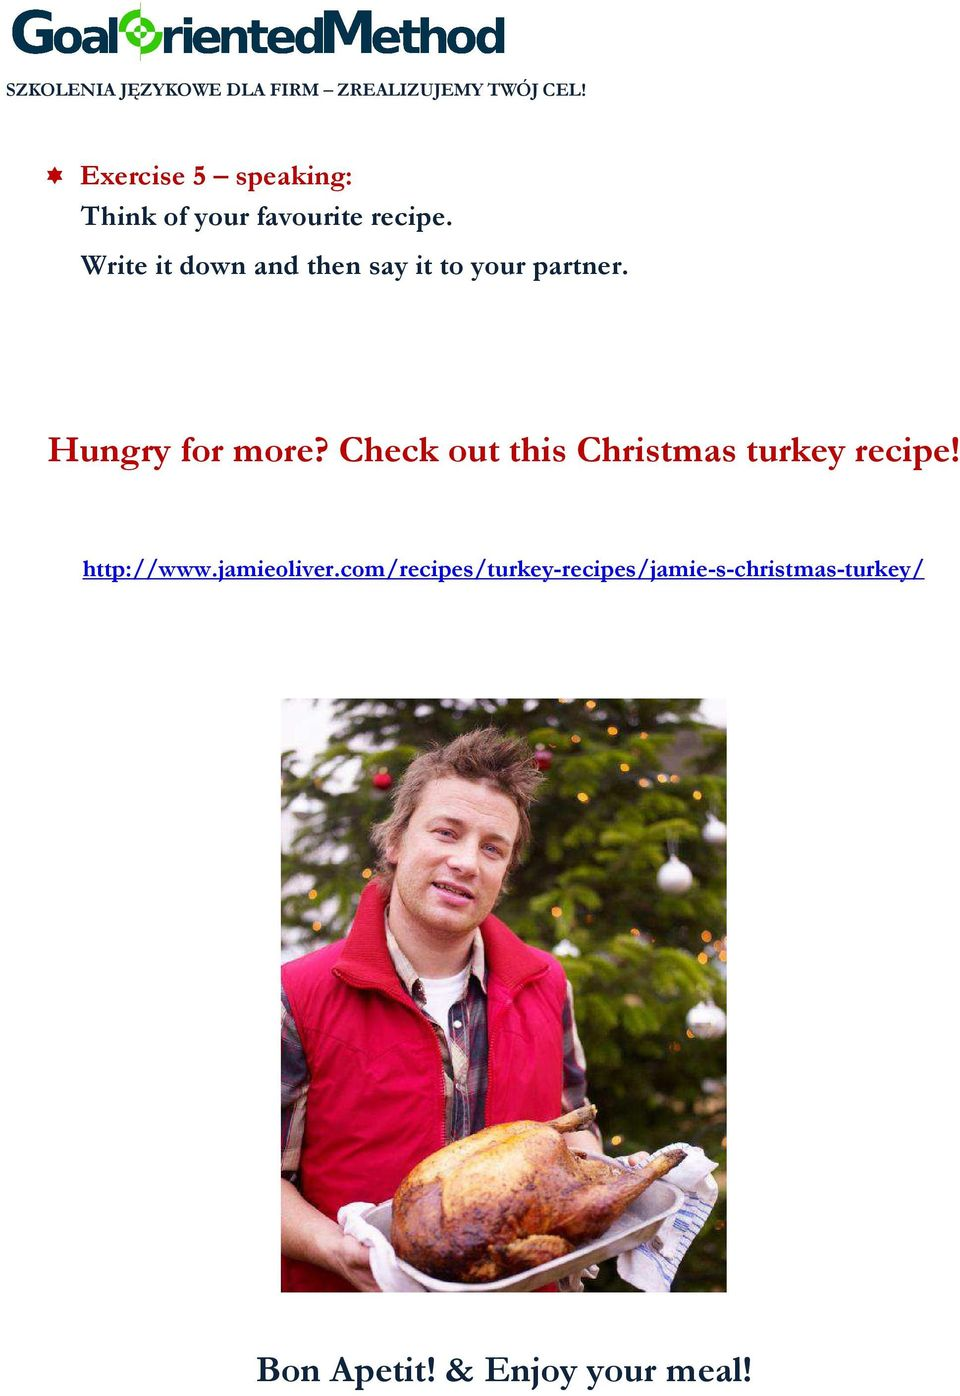 Check out this Christmas turkey recipe! http://www.jamieoliver.